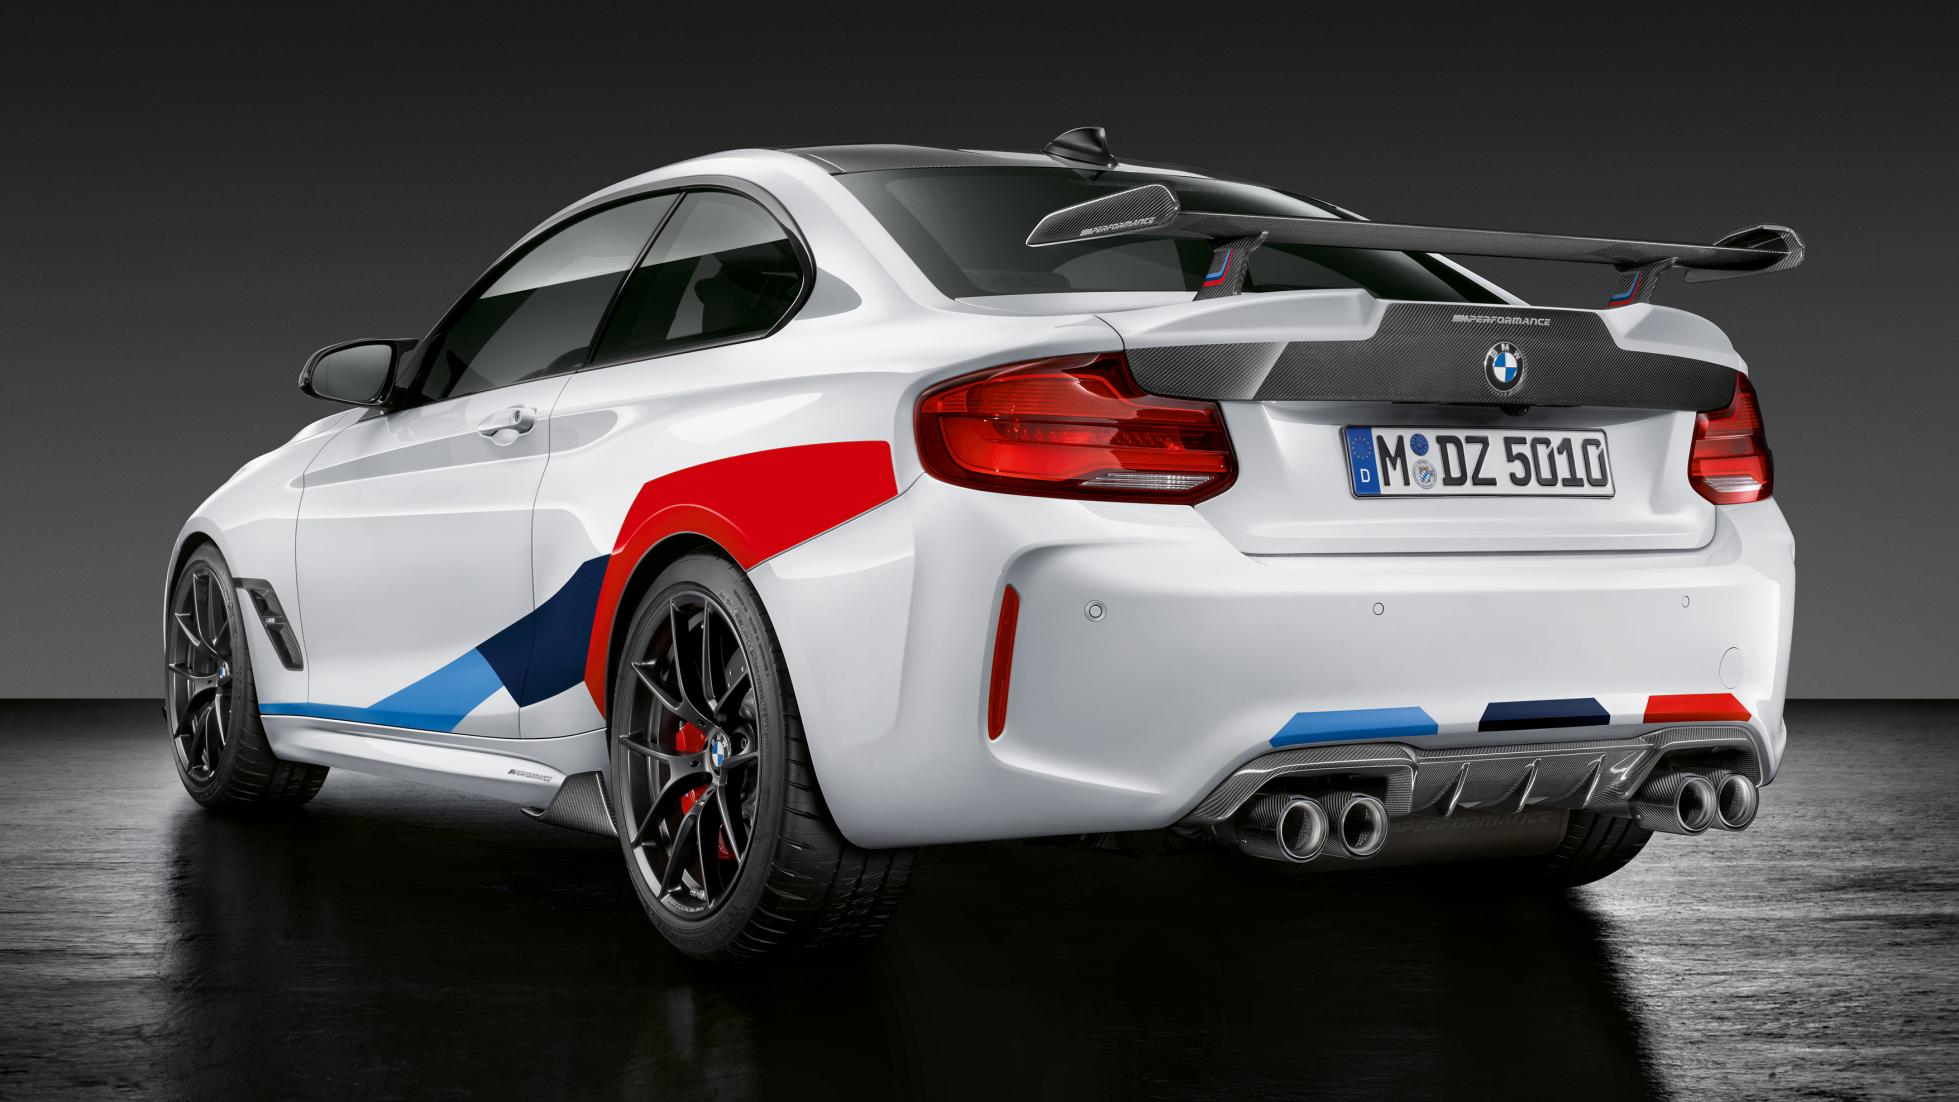 BMW M2 Competition Car back view photo wallpaper